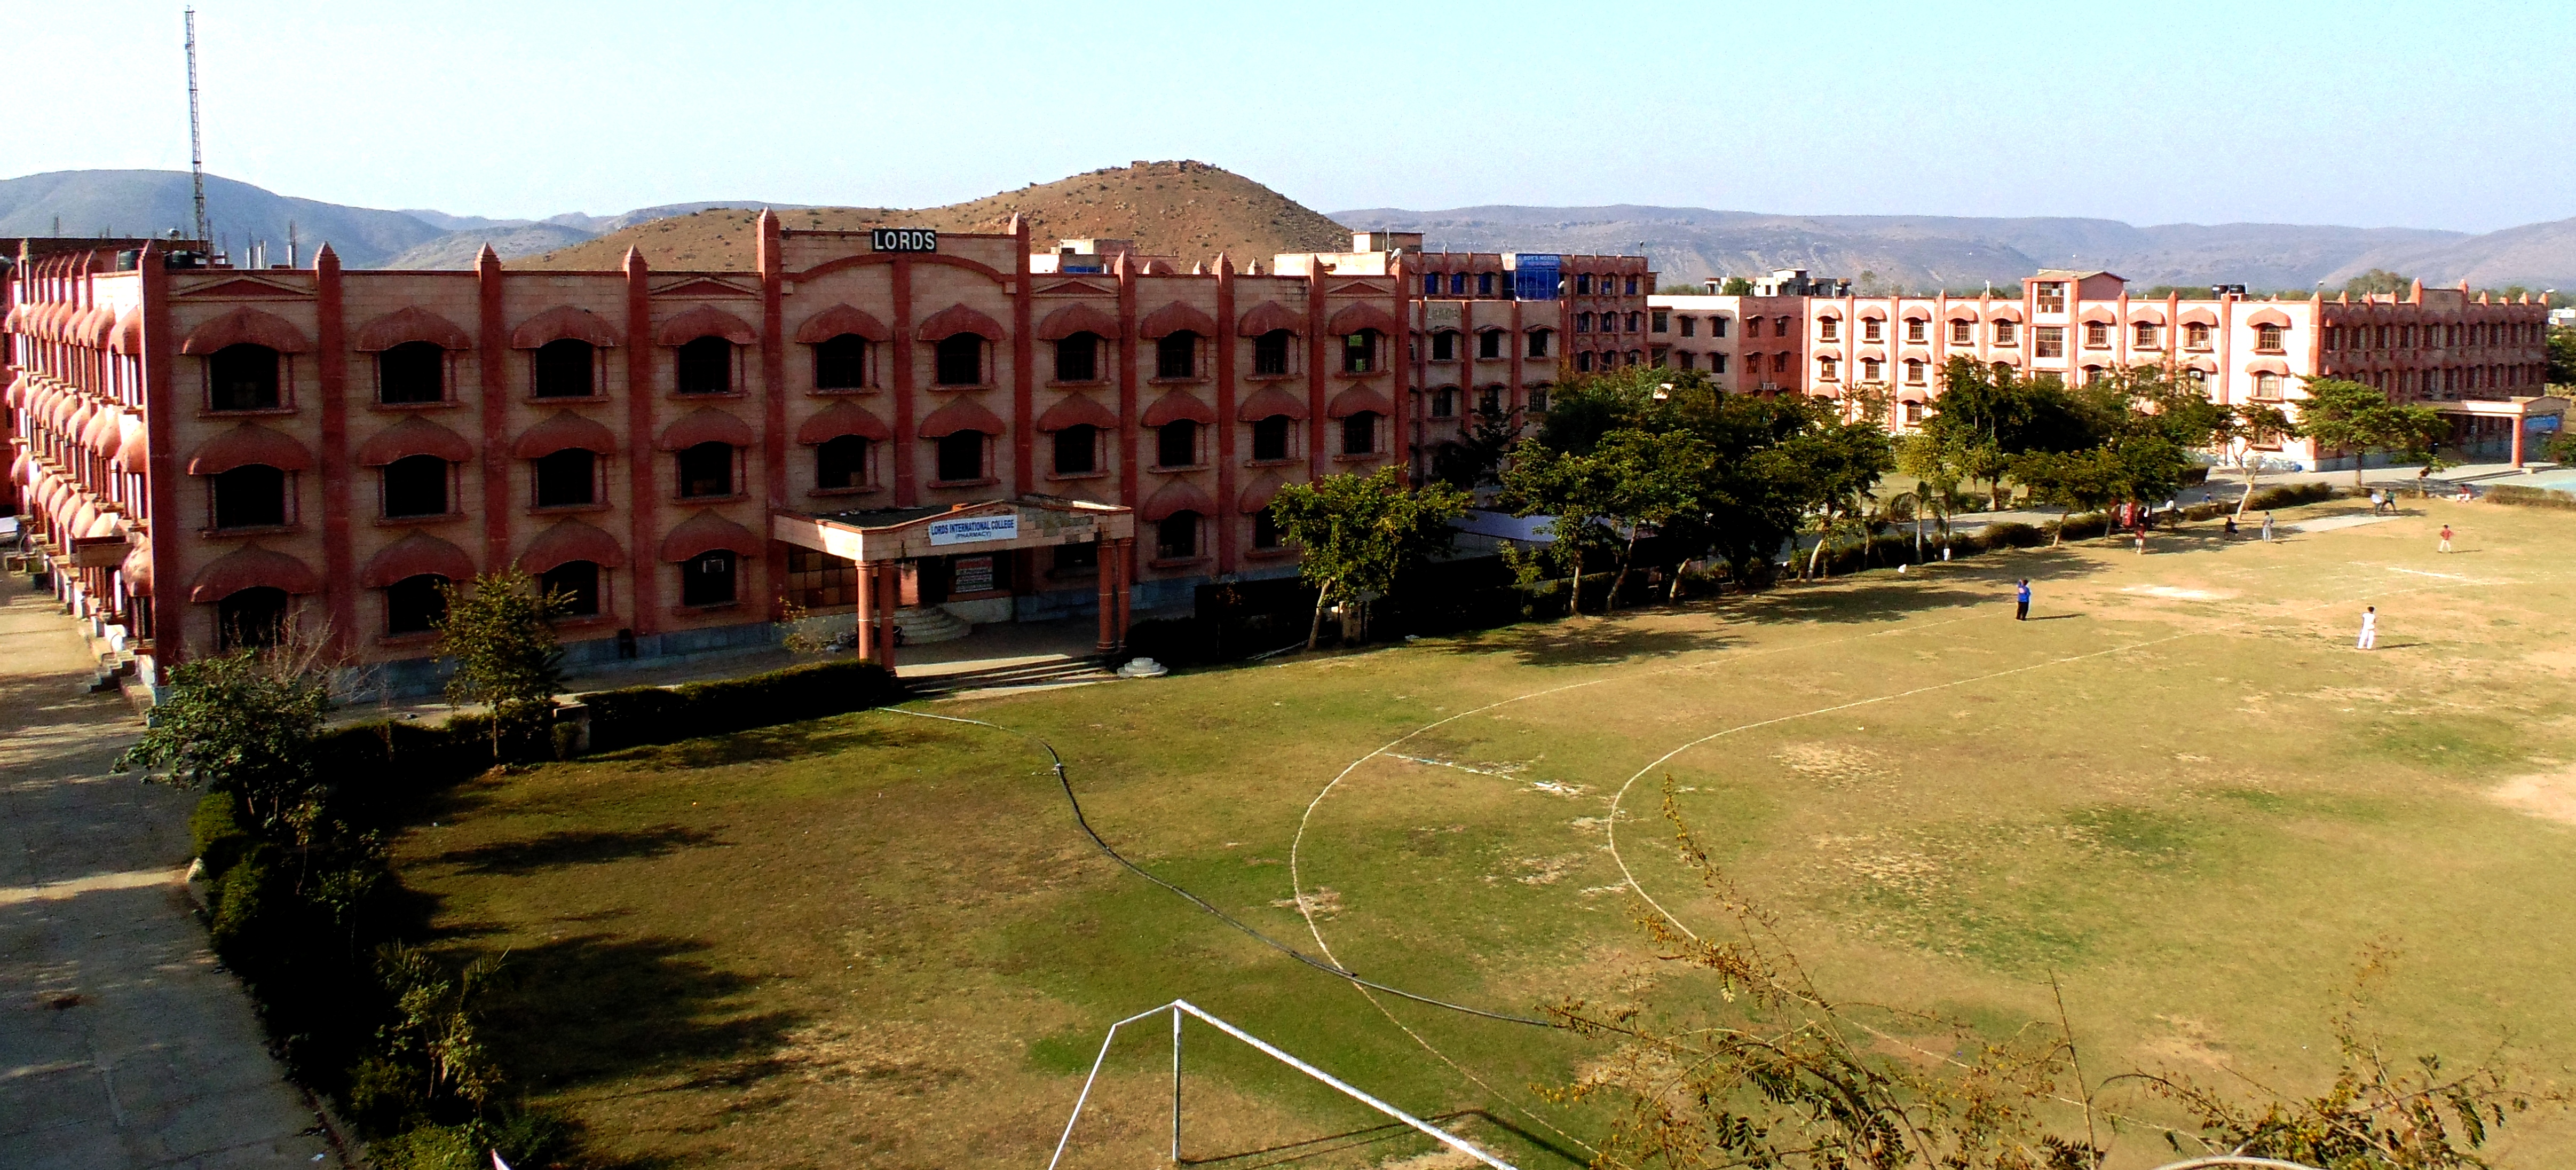 Full Campus View